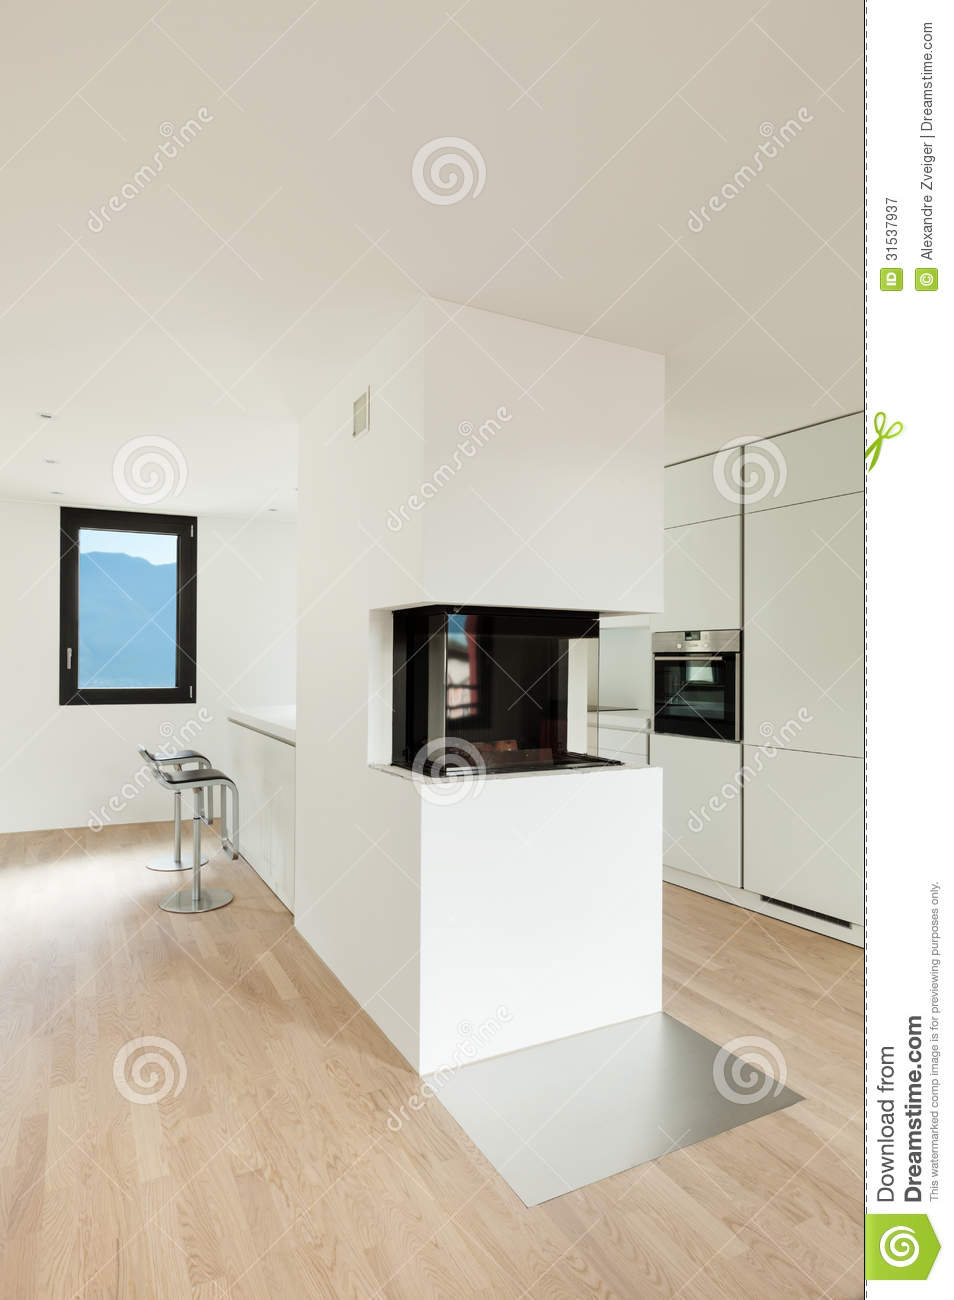 download İdare Hukukunun